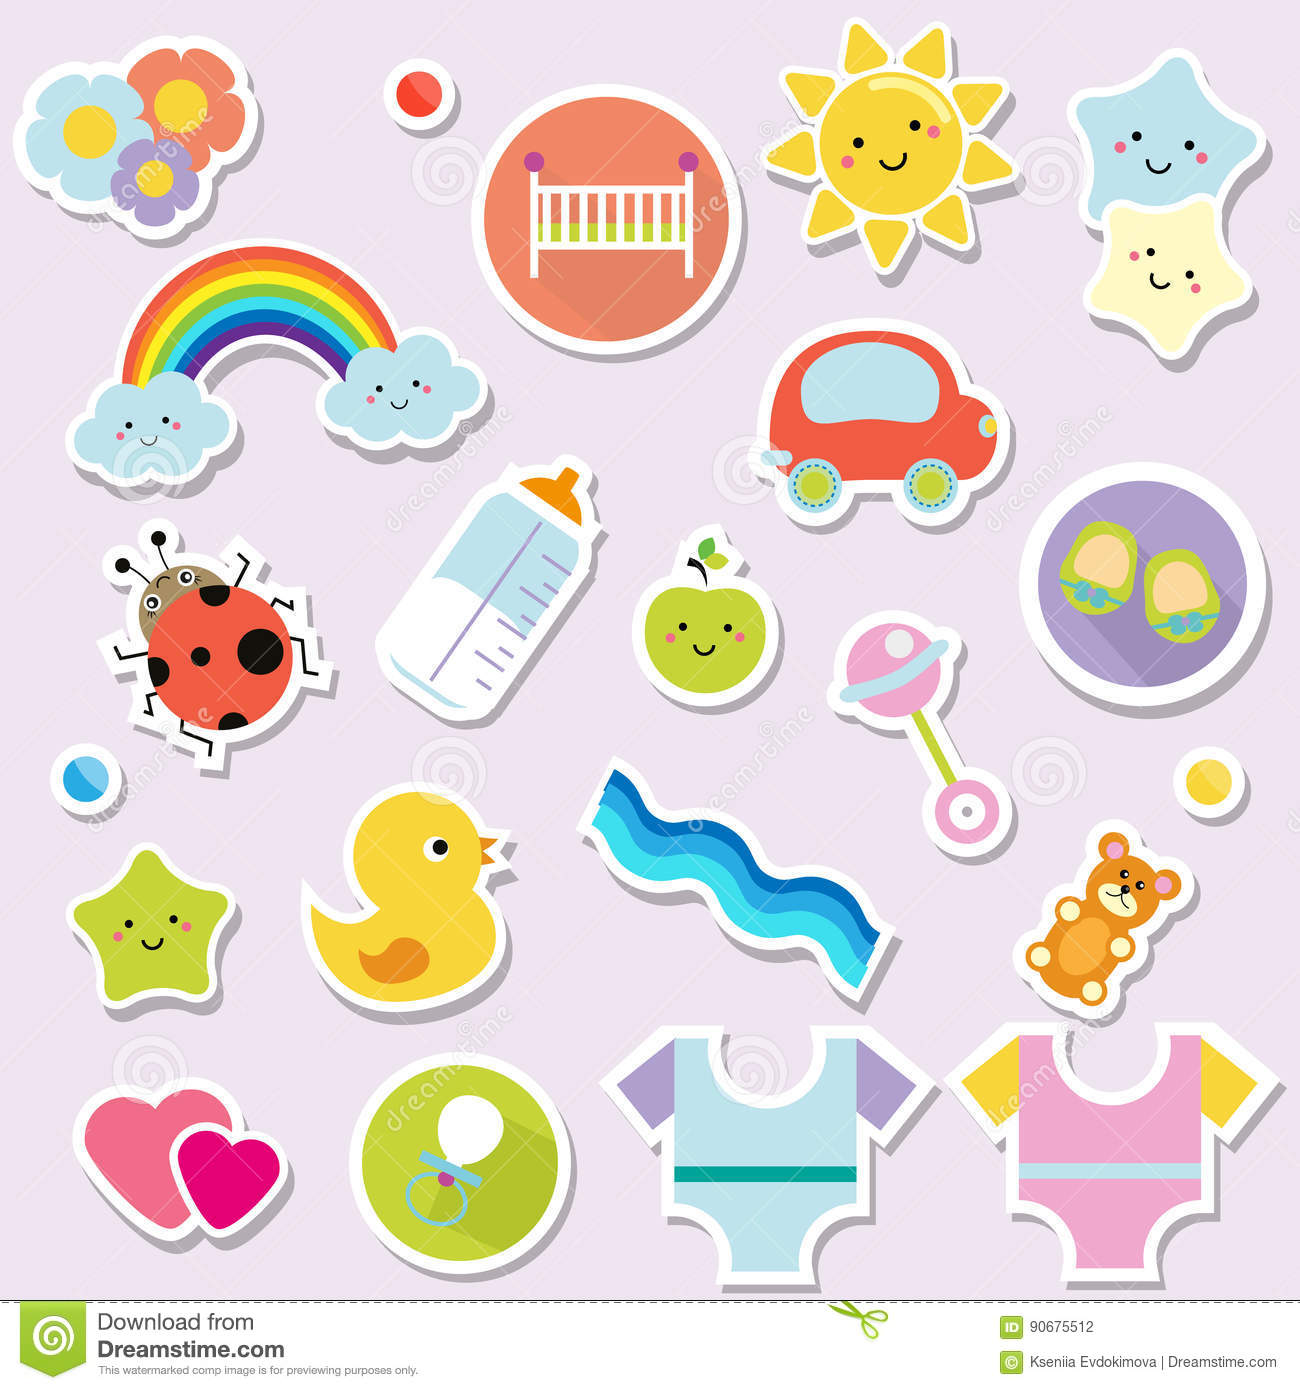 Baby Stickers Kids Children Design Elements